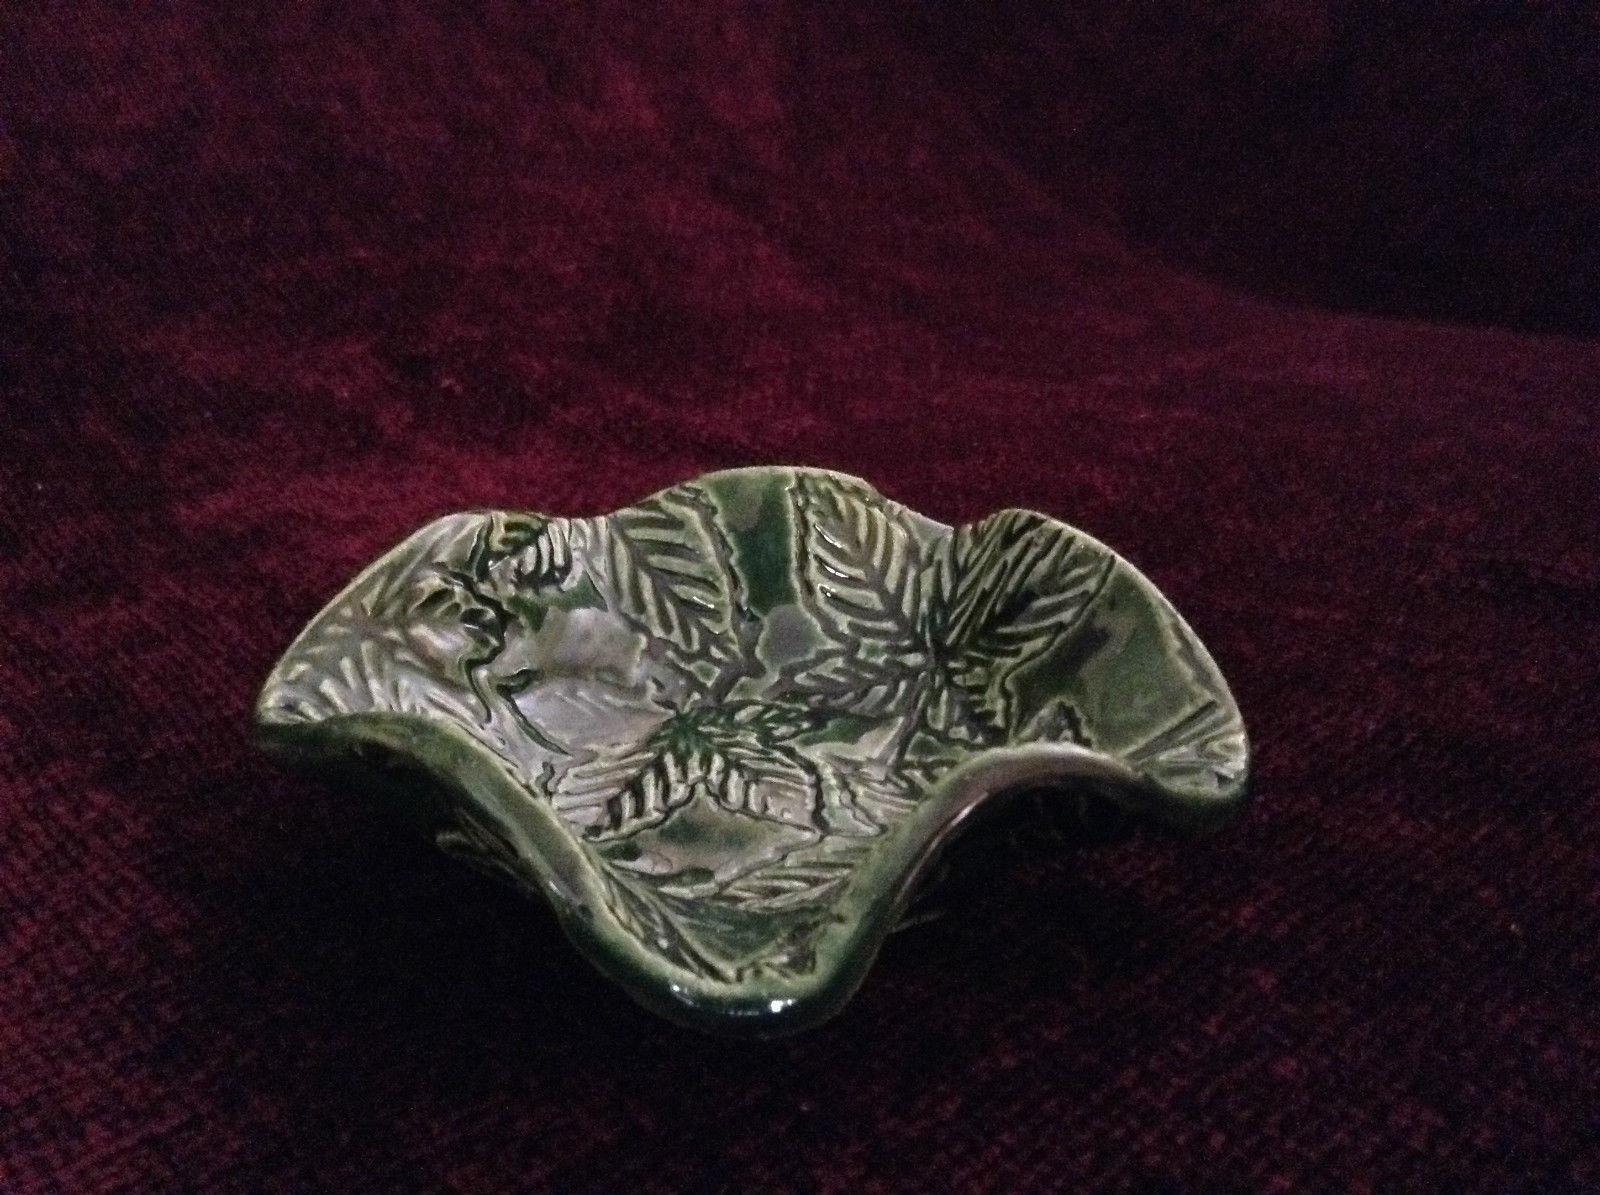 Green Decorative Candy Dish with Leaves 4 Inches by 1 inch